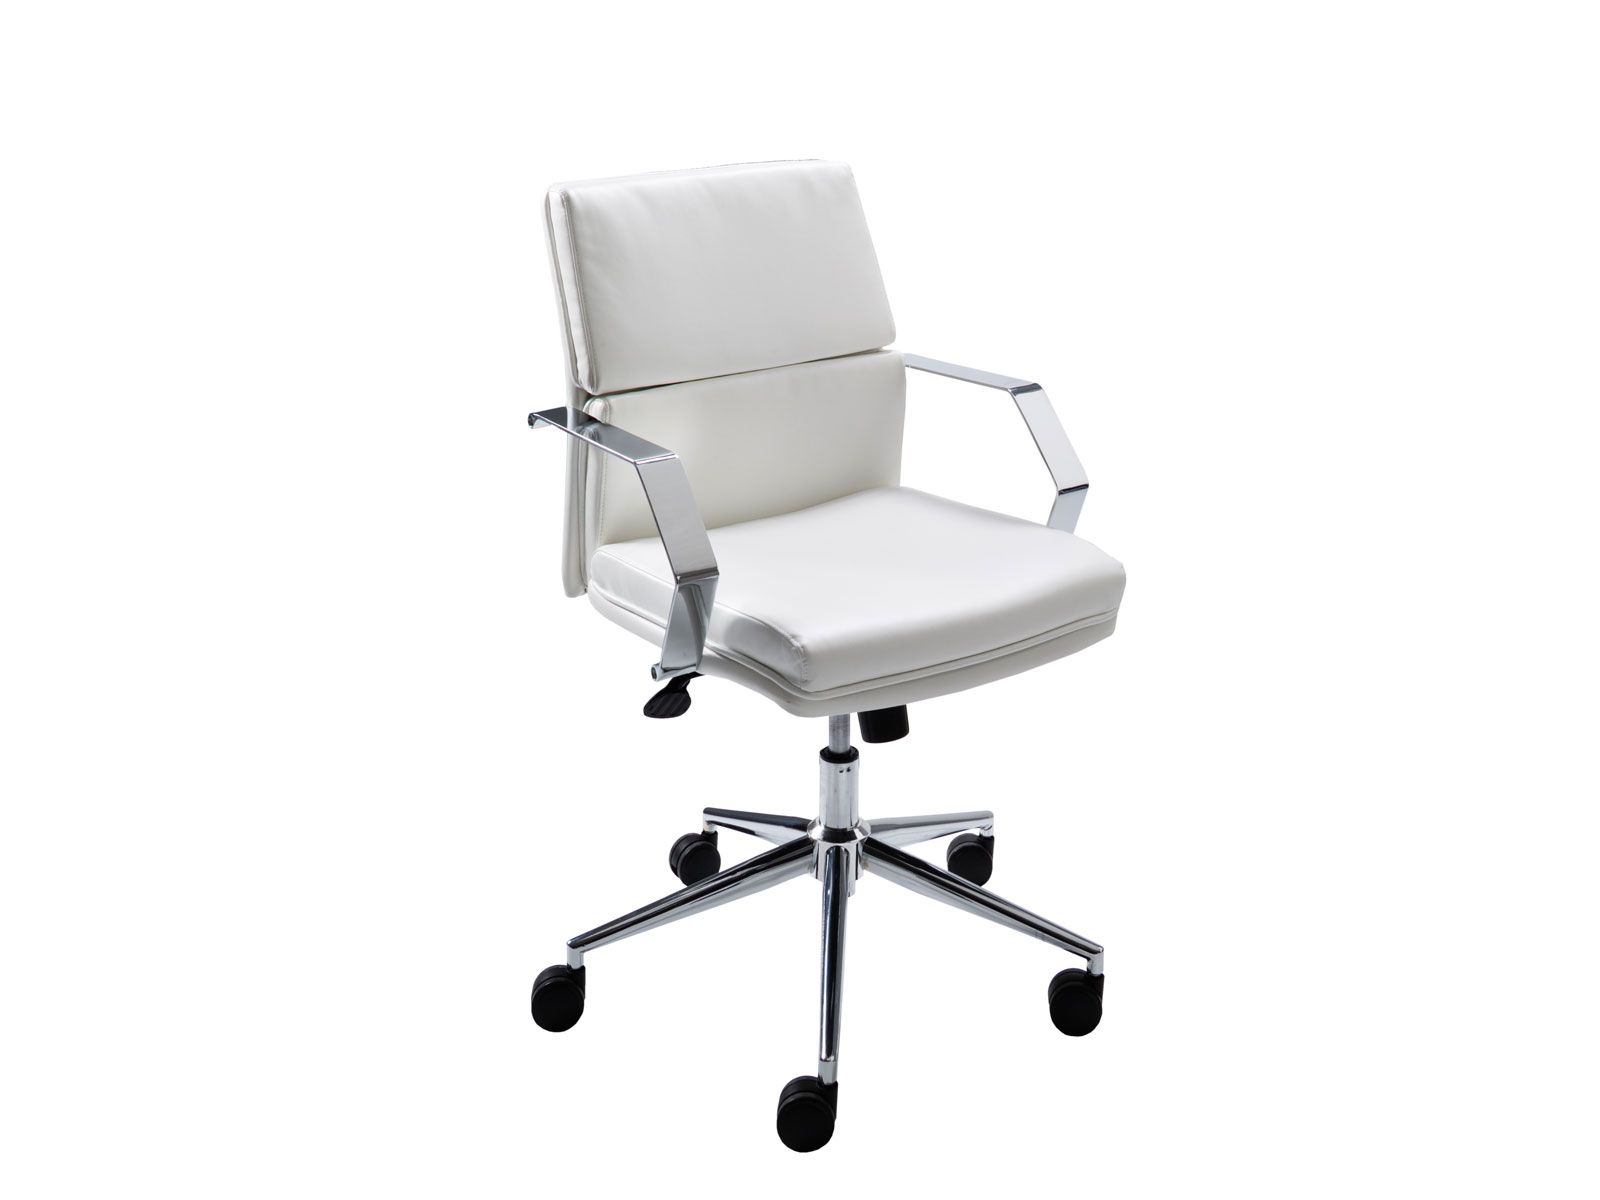 office chair rental hanging chairs uk exhibit design search ceoc 004 executive furniture pro trade show